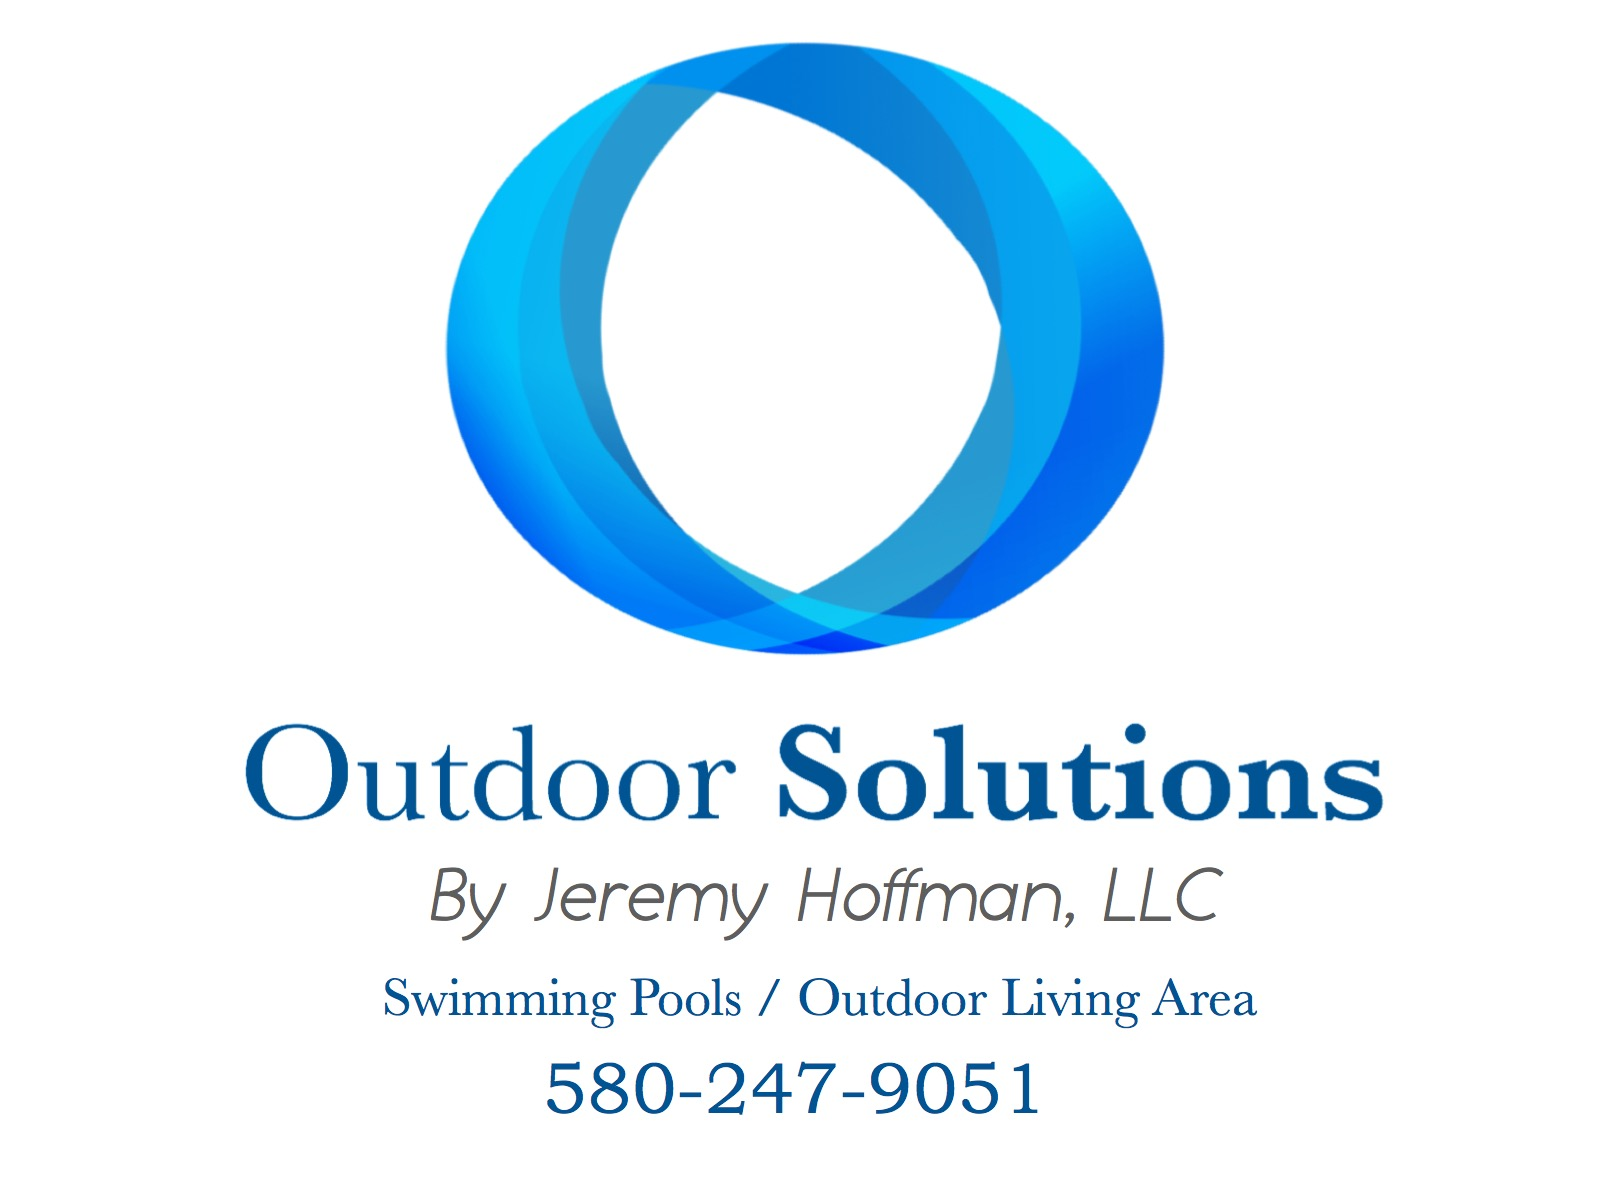 outdoor solutions sample 1.jpeg